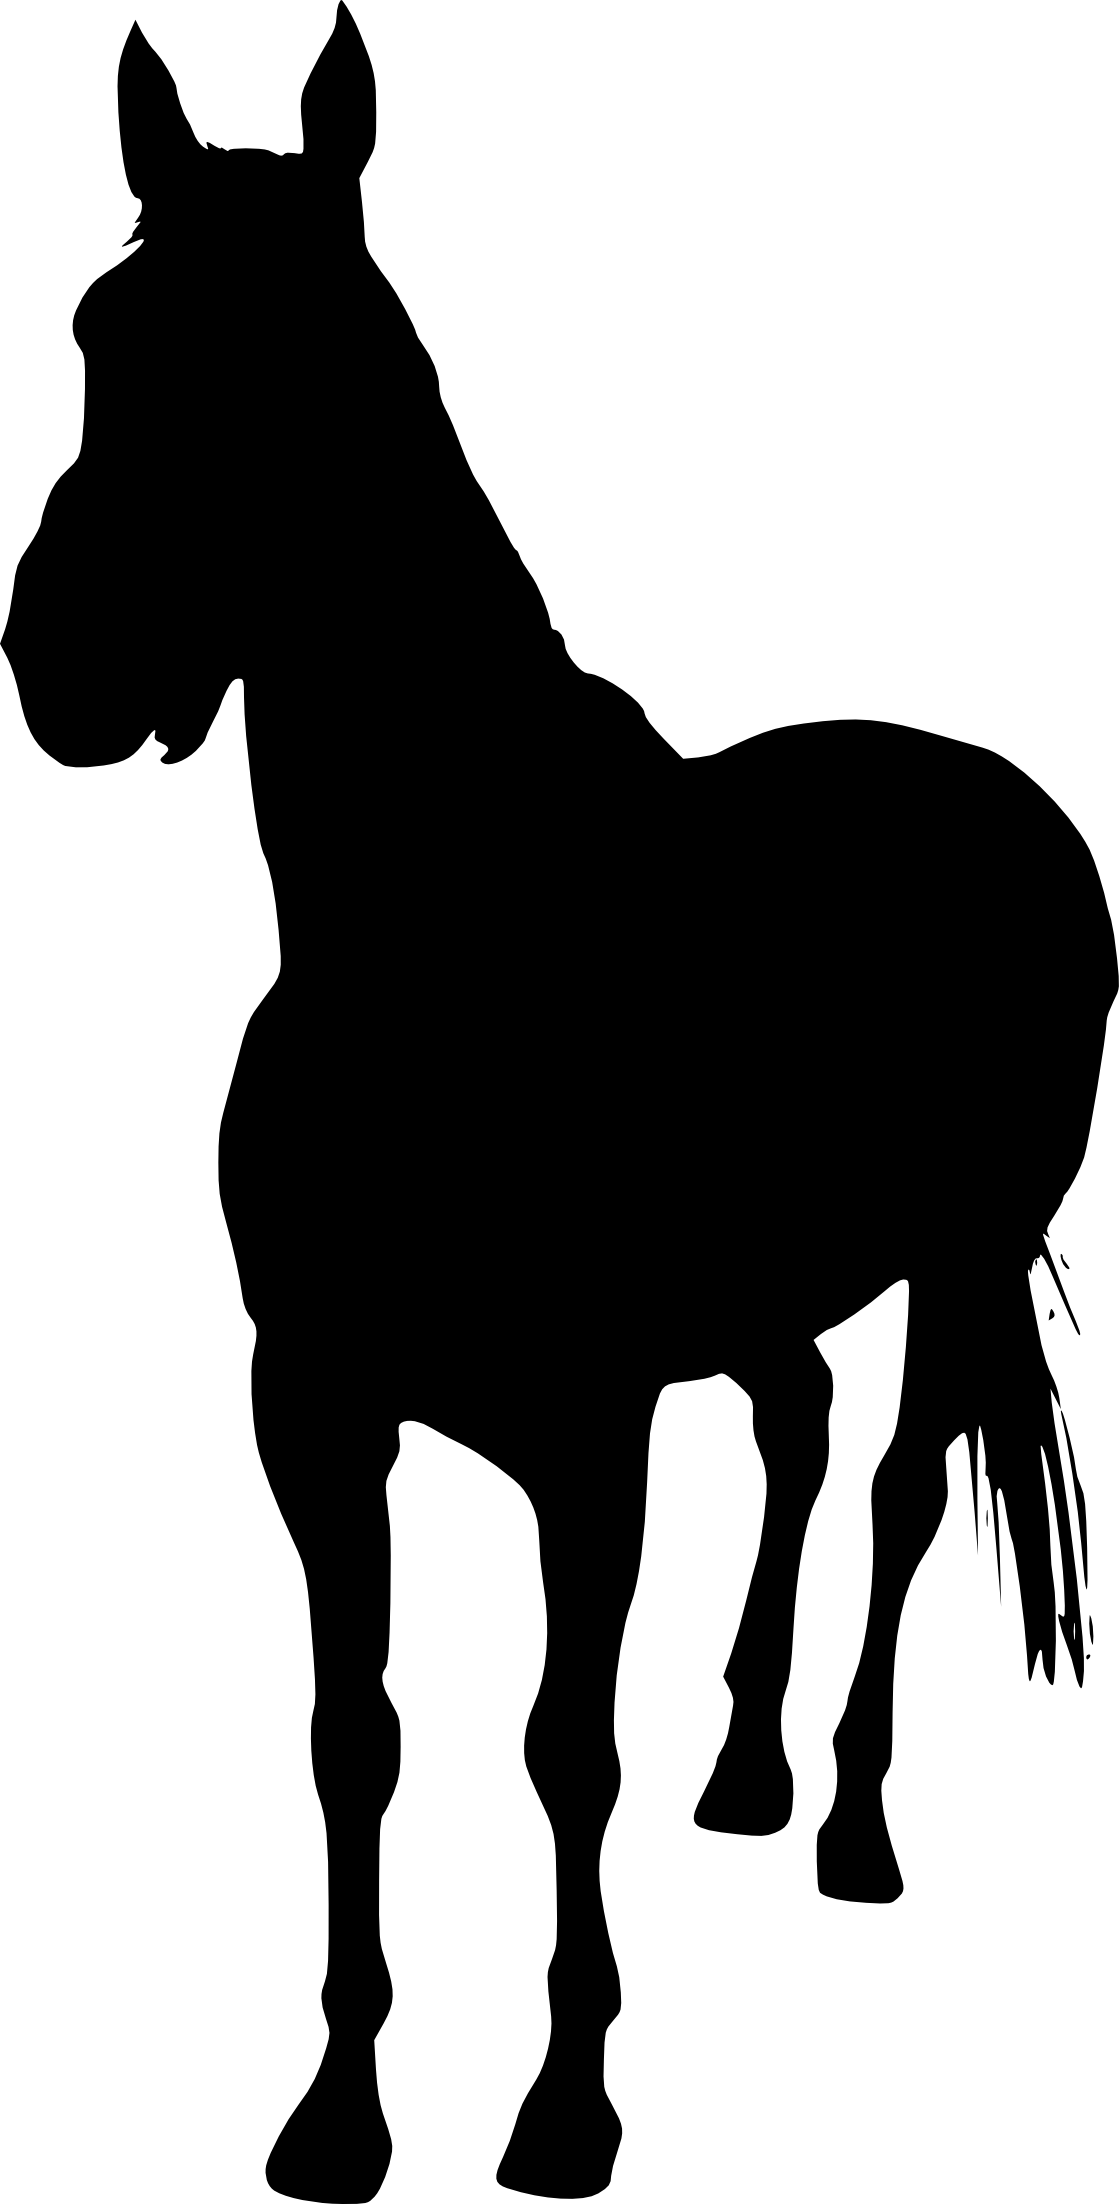 Horse clip art clear background. Silhouette png transparent